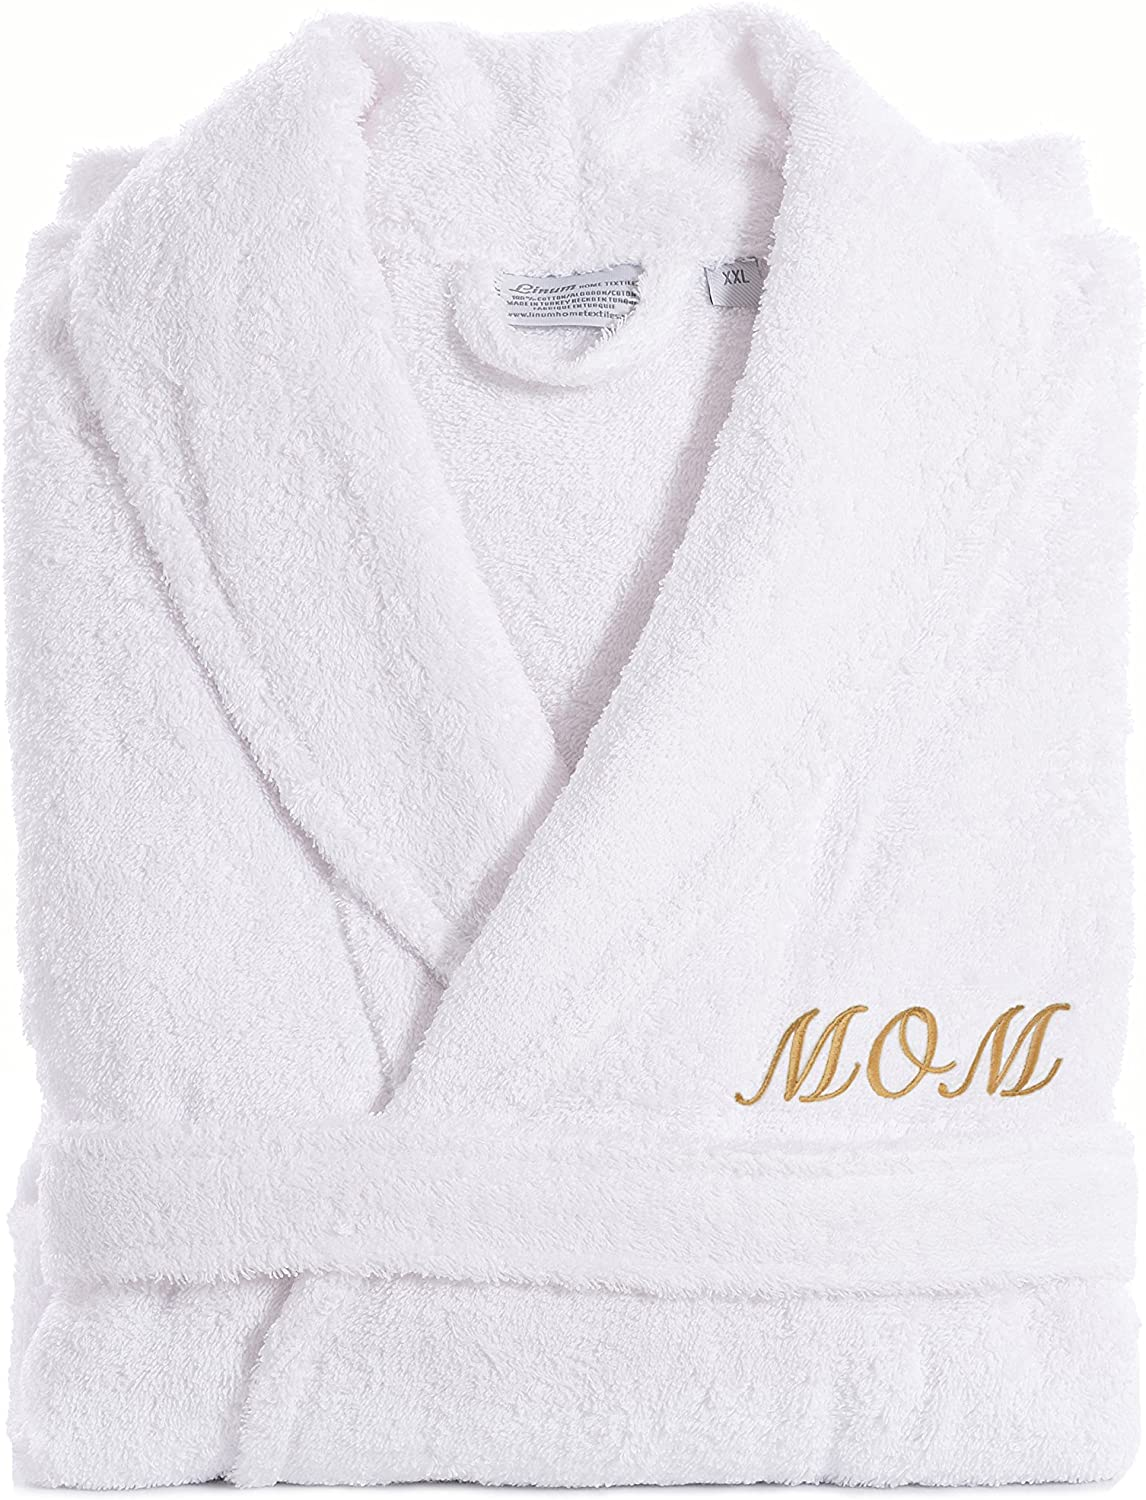 Linum Home Textiles TR00-XX-MOMG White Terry Bathrobe for MOM, XX-Large, Gold Embroidery